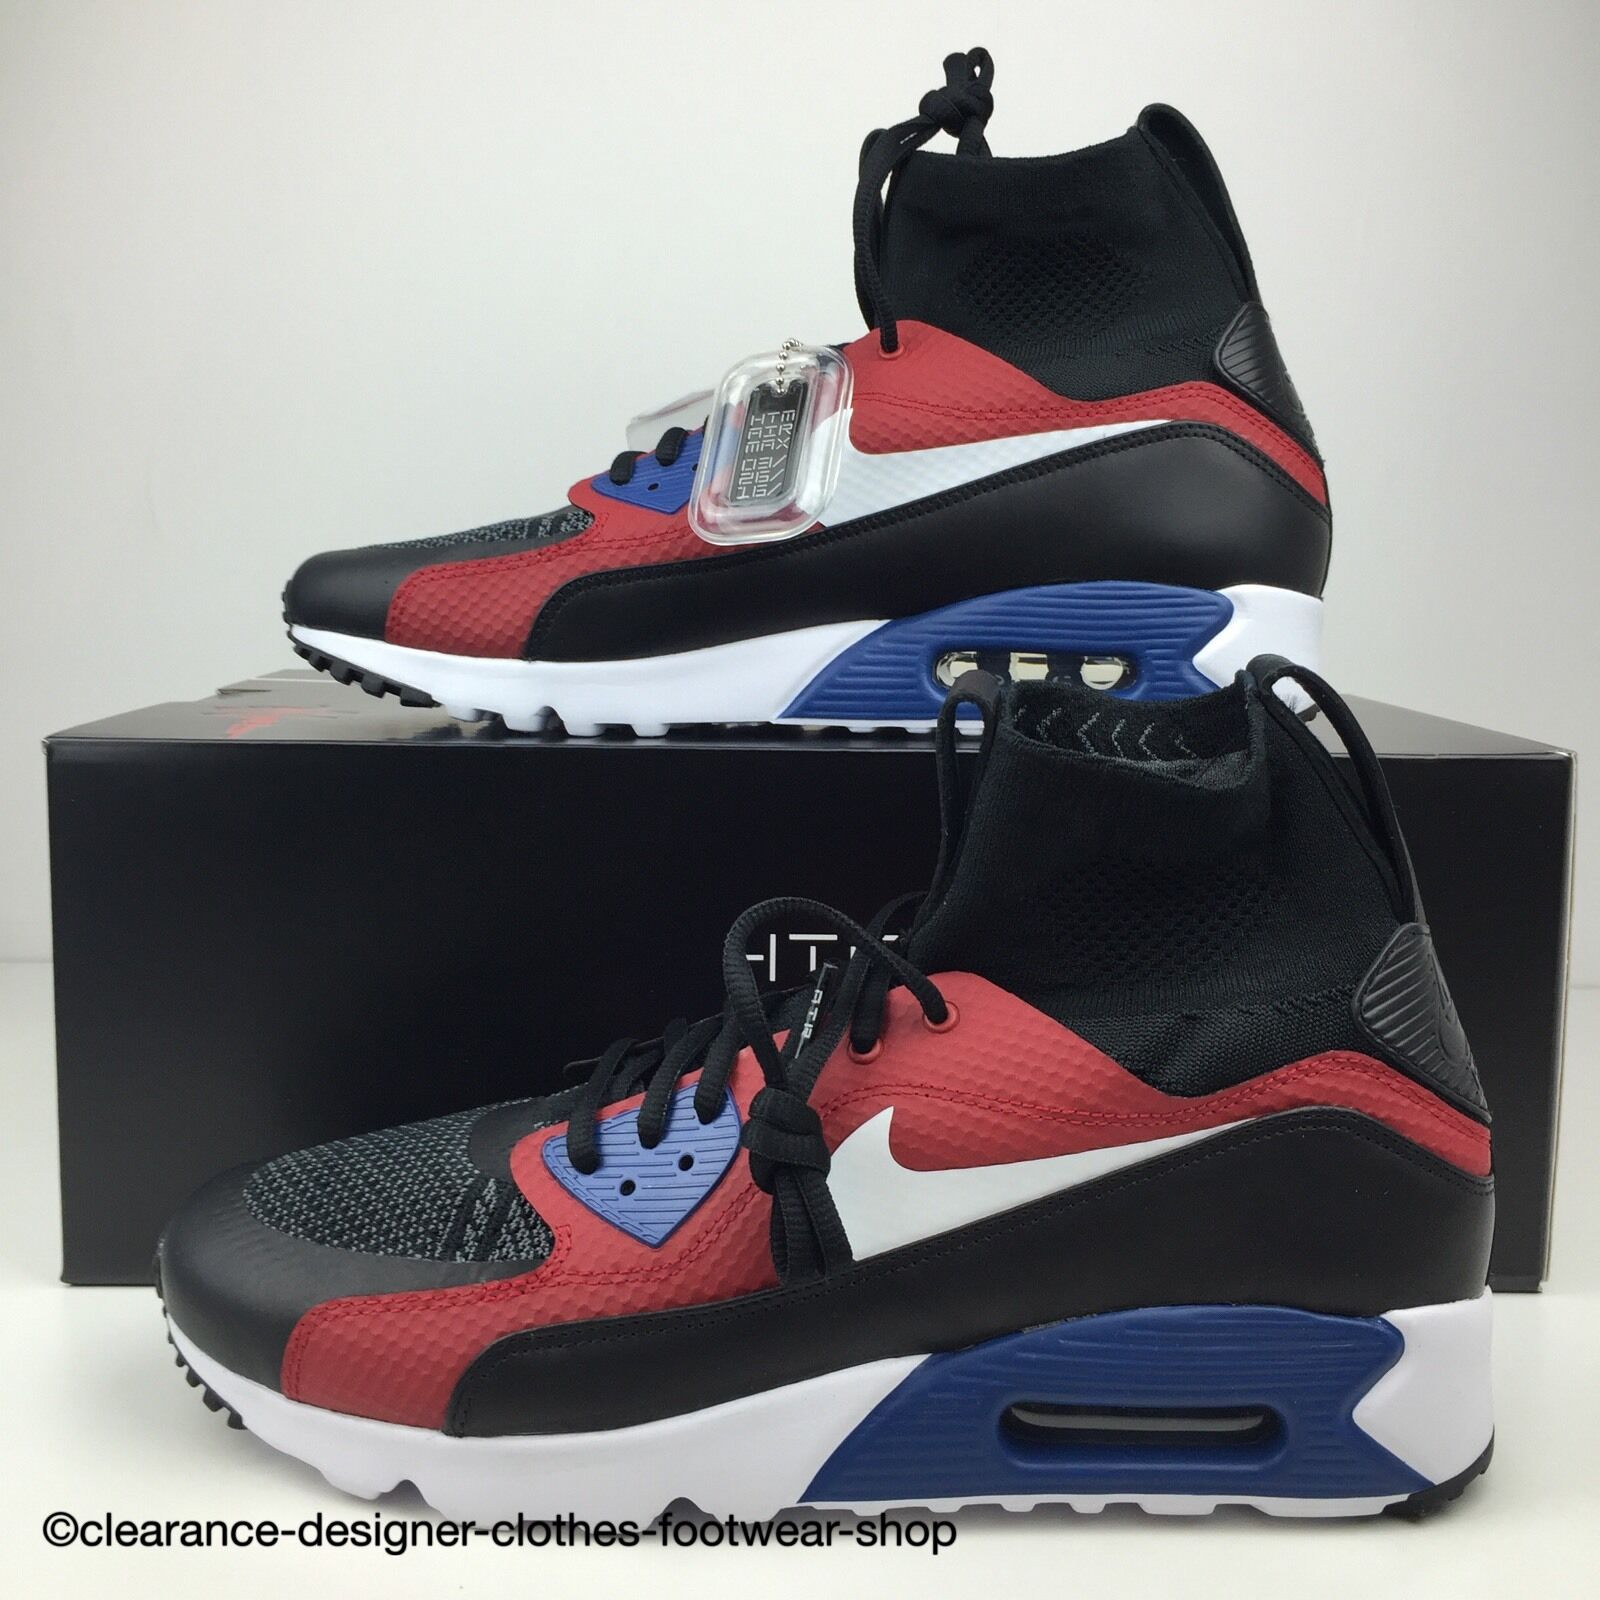 HTM NIKE AIR MAX 90 ULTRA SUPERFLY TRAINERS Hommes HTM MAX DAY TINKER Chaussures 10